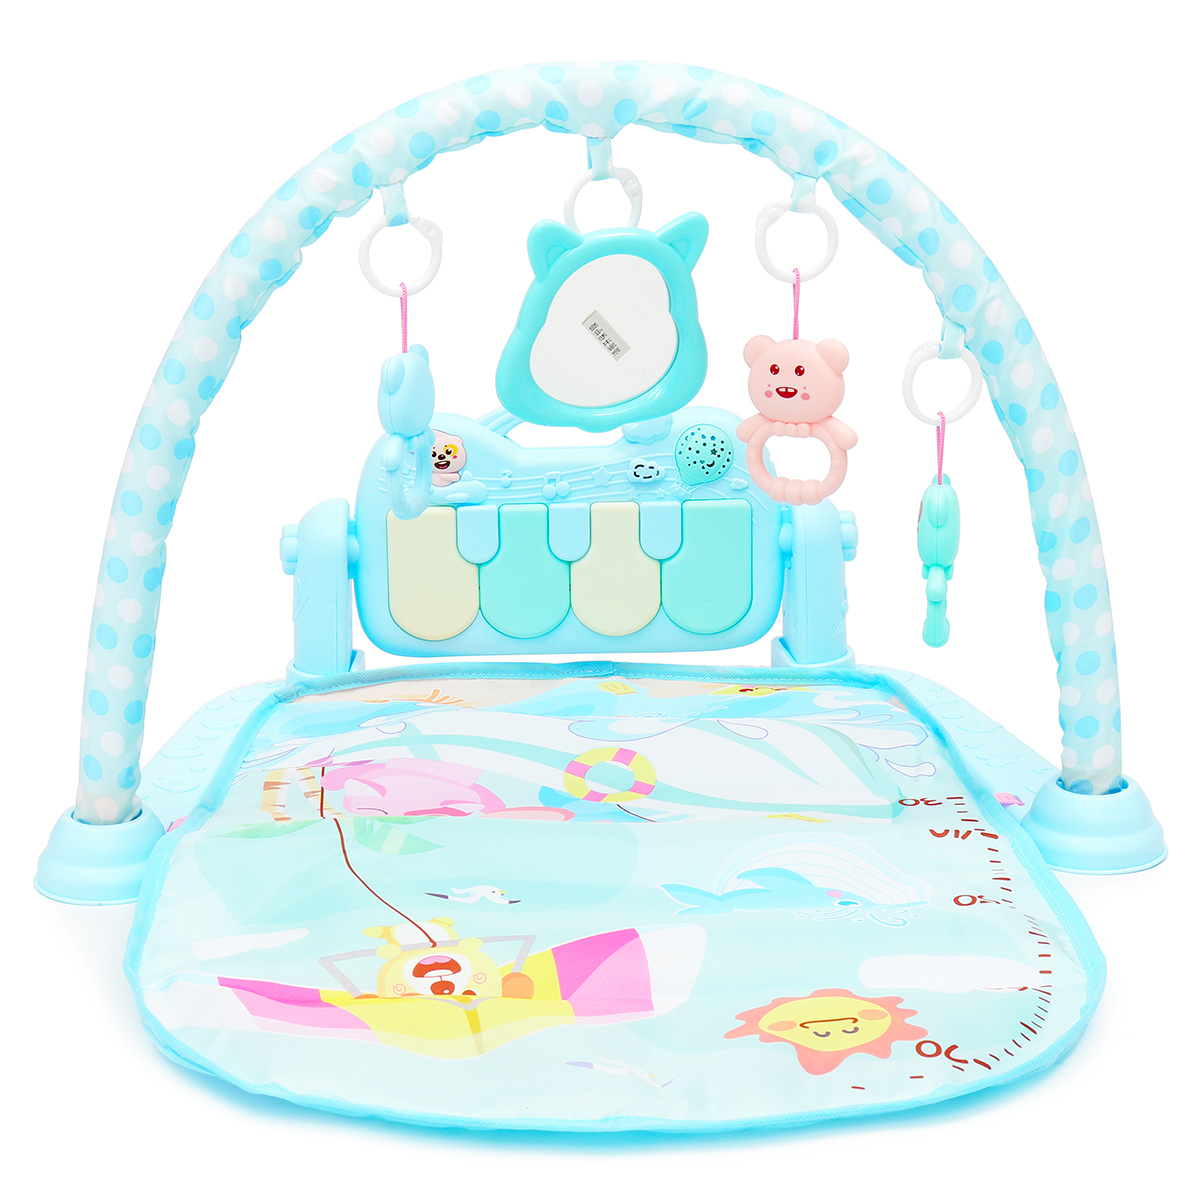 3-in-1 Baby Infant Gym Play Mat Fitness Music Piano Pedal Educational Toys USB